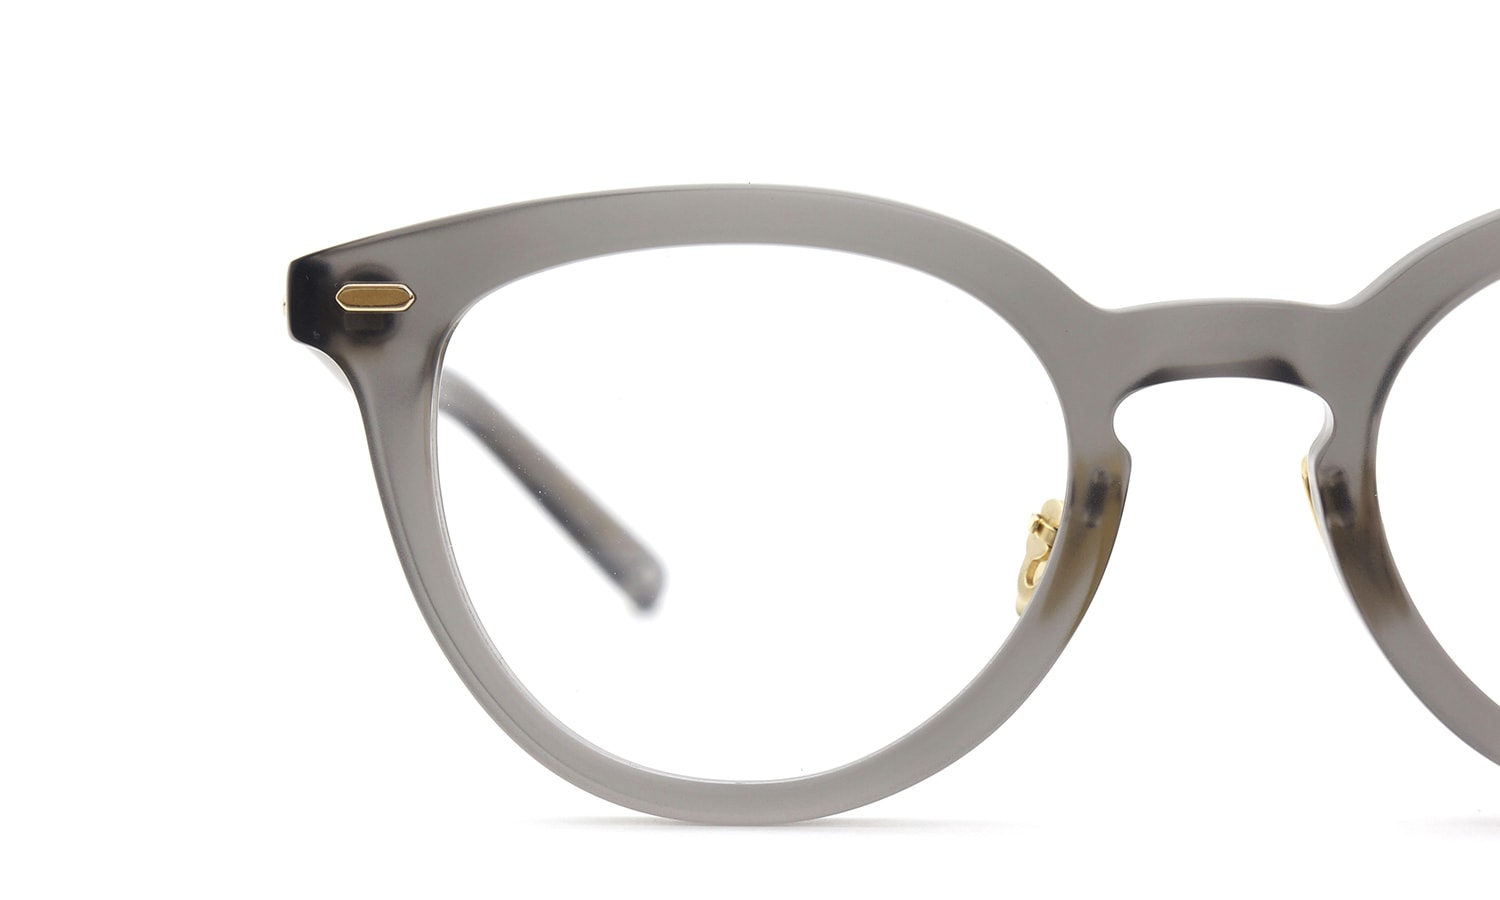 OG × OLIVER GOLDSMITH Re:PELOTA 48 リ:ペロタ 15